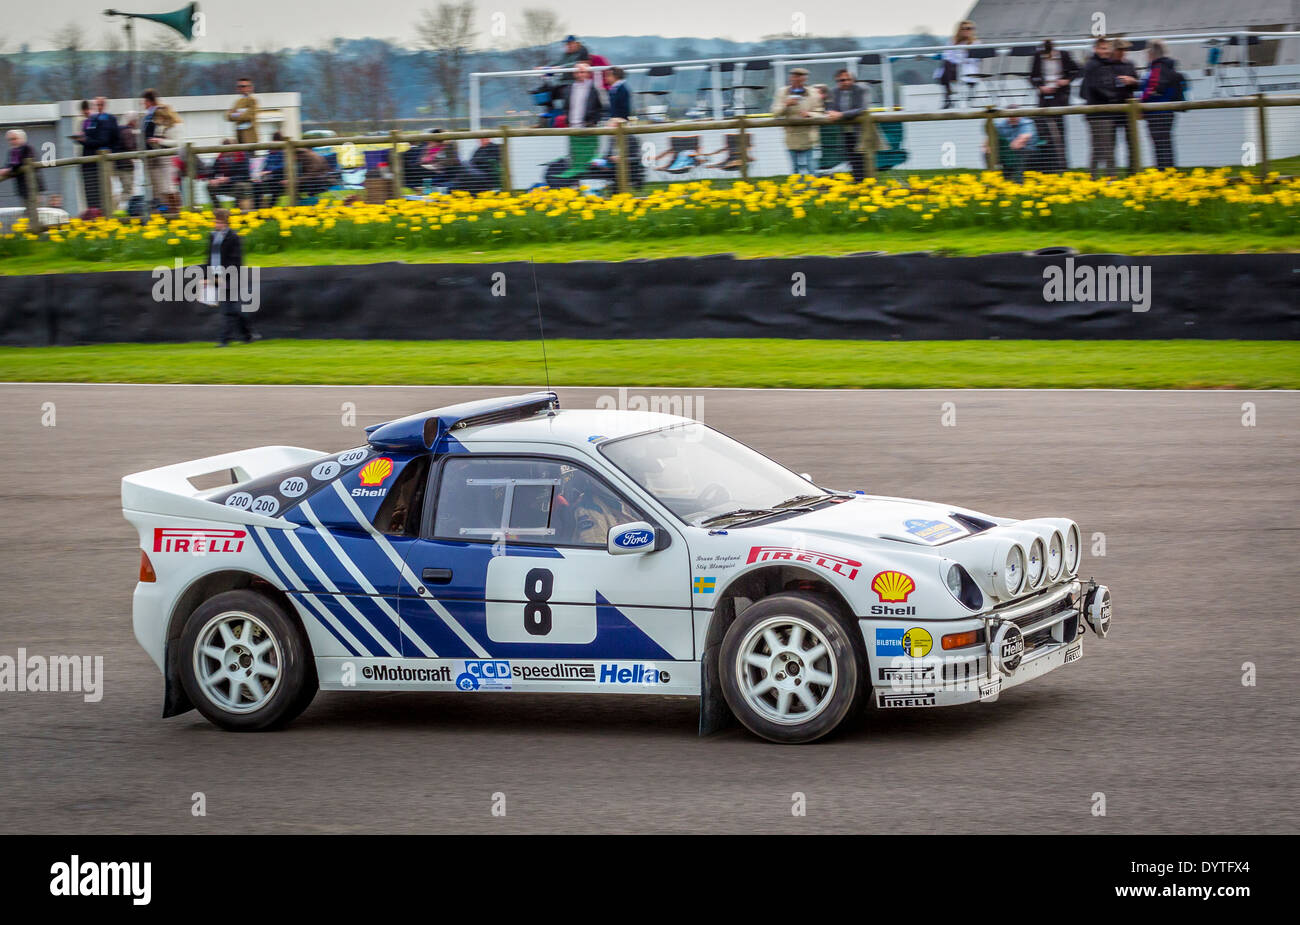 1986 Ford Rs200 Evo Group B Rally Car With Driver James Avis 72nd